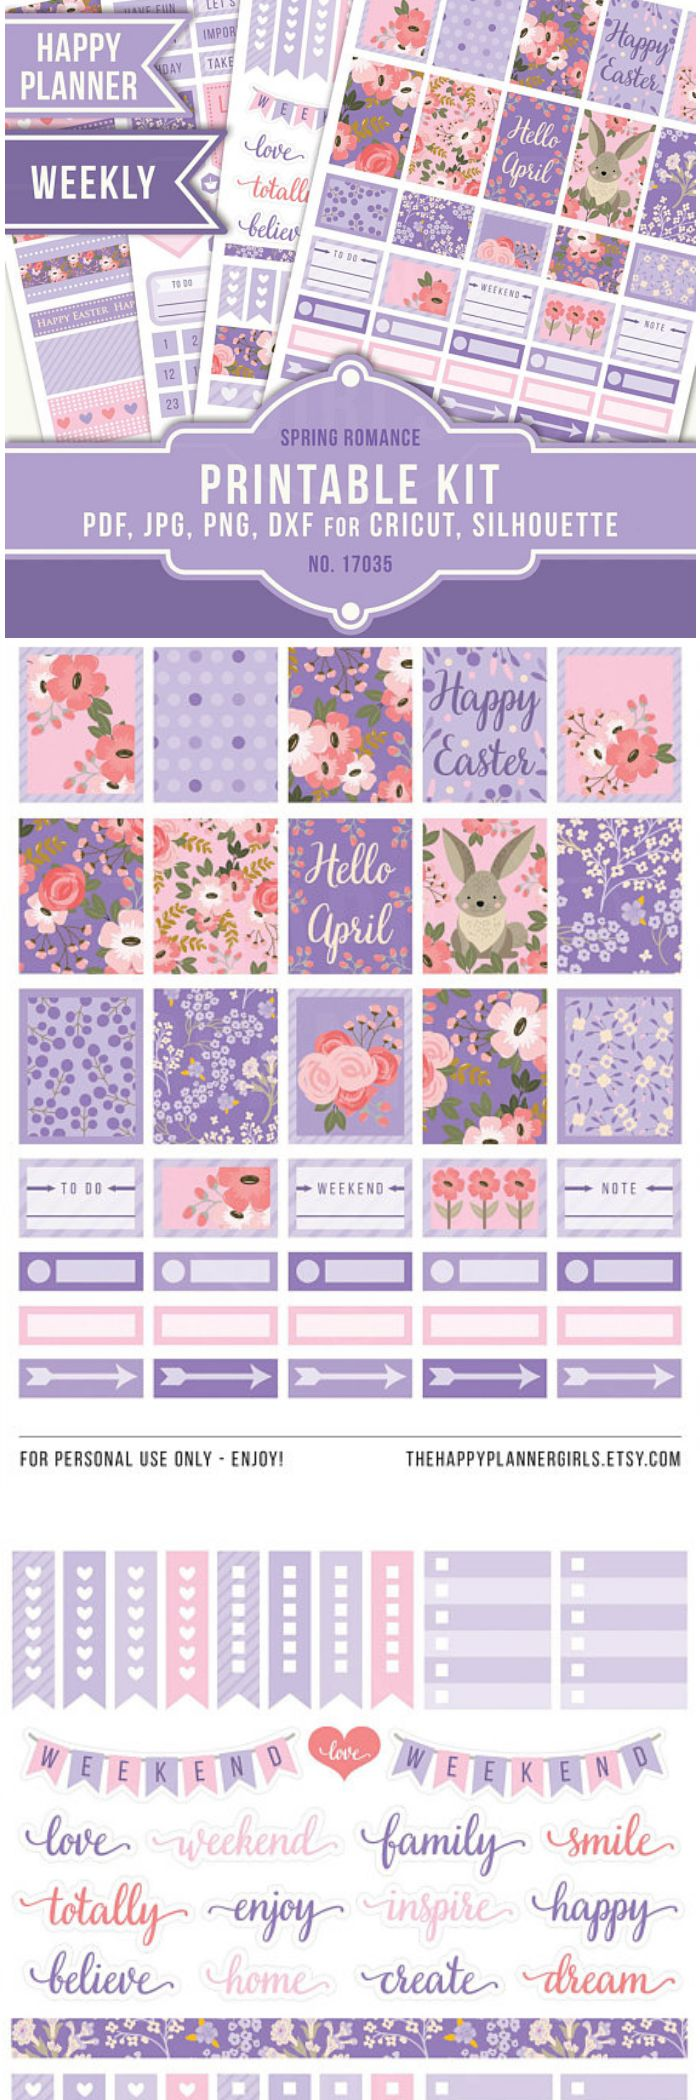 These PRINTABLE planner stickers are perfect for the MAMBI Happy Planner Classic but of course they can be used in other type of planners as well. Happy Planner Stickers April , Easter Planner Stickers, Weekly Planner, Printable Planner Stickers, Weekly Stickers, MAMBI #hellospring #easter #easterdiy #ad #stickers #happyplanner #printables #bulletjournals #cutfile #etsy